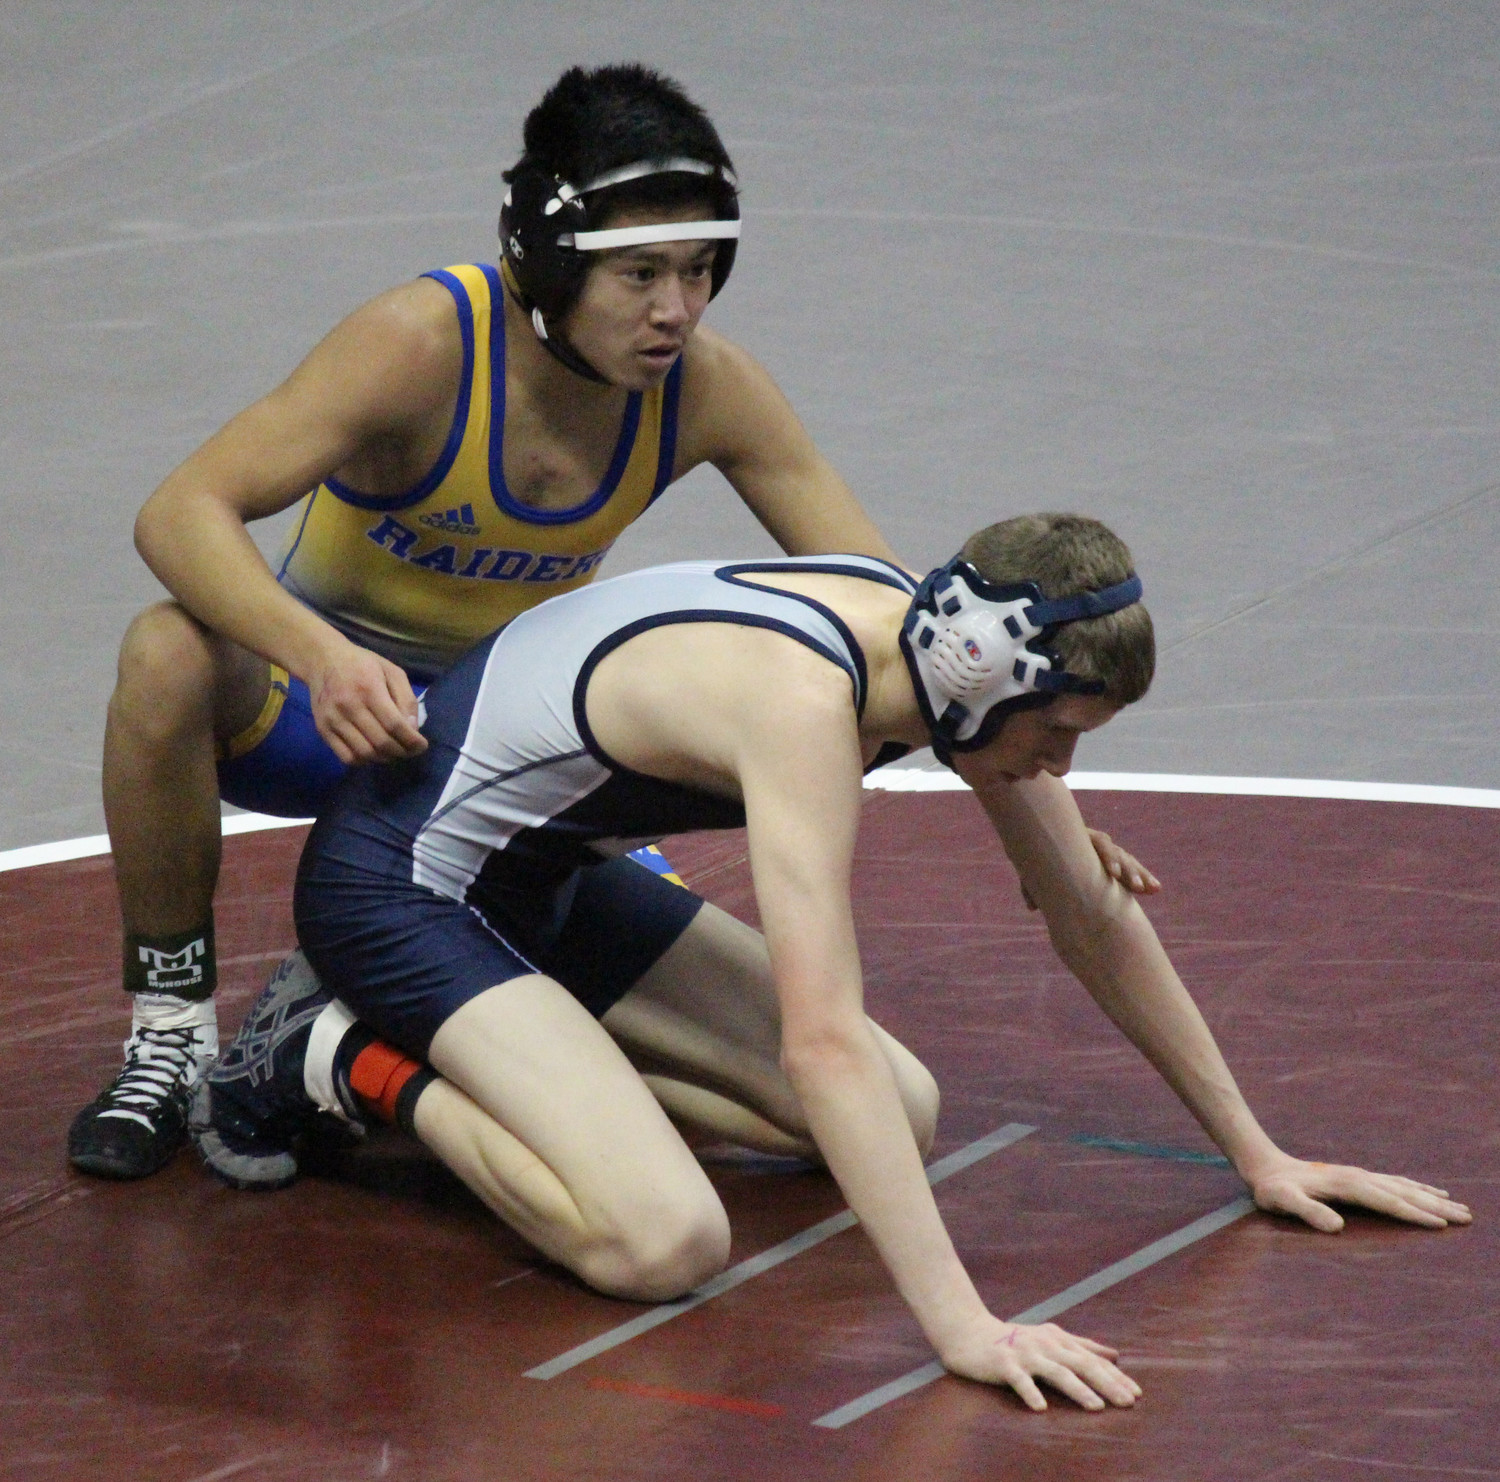 Zach Malay lost to Devan Blose of Newport.